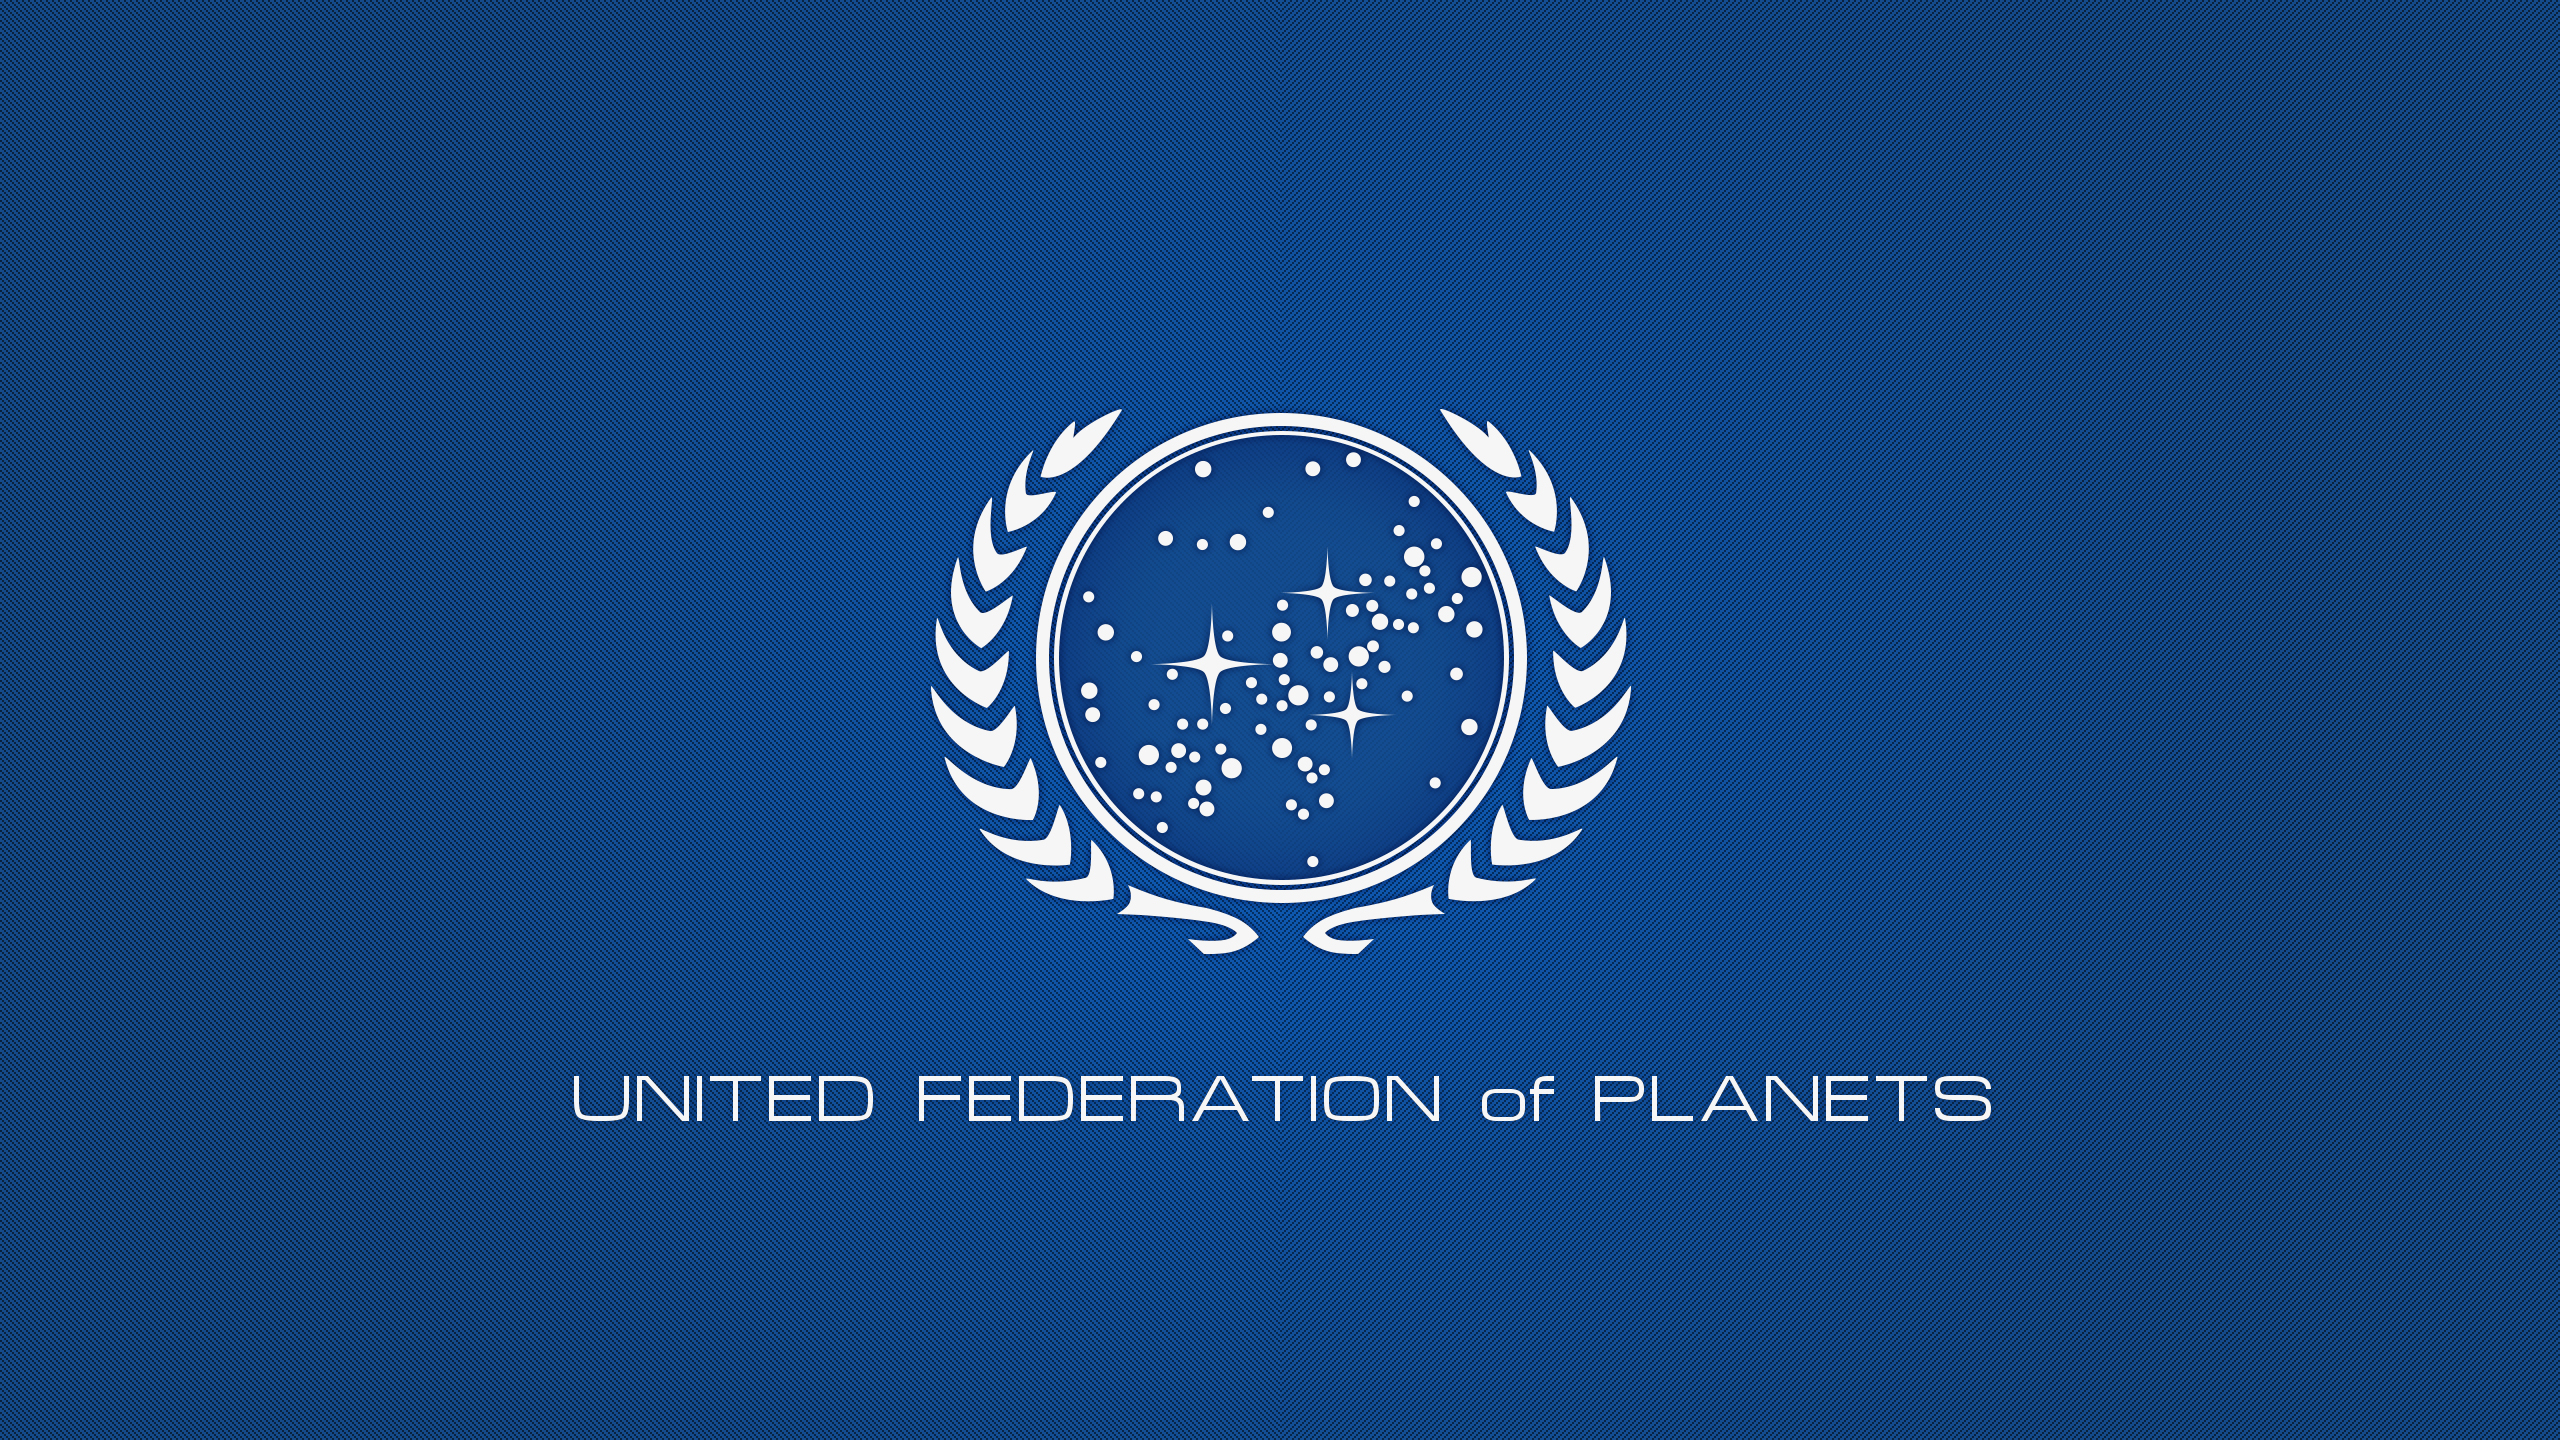 United Federation of Planets by X3lectric United Federation of Planets by X3lectric